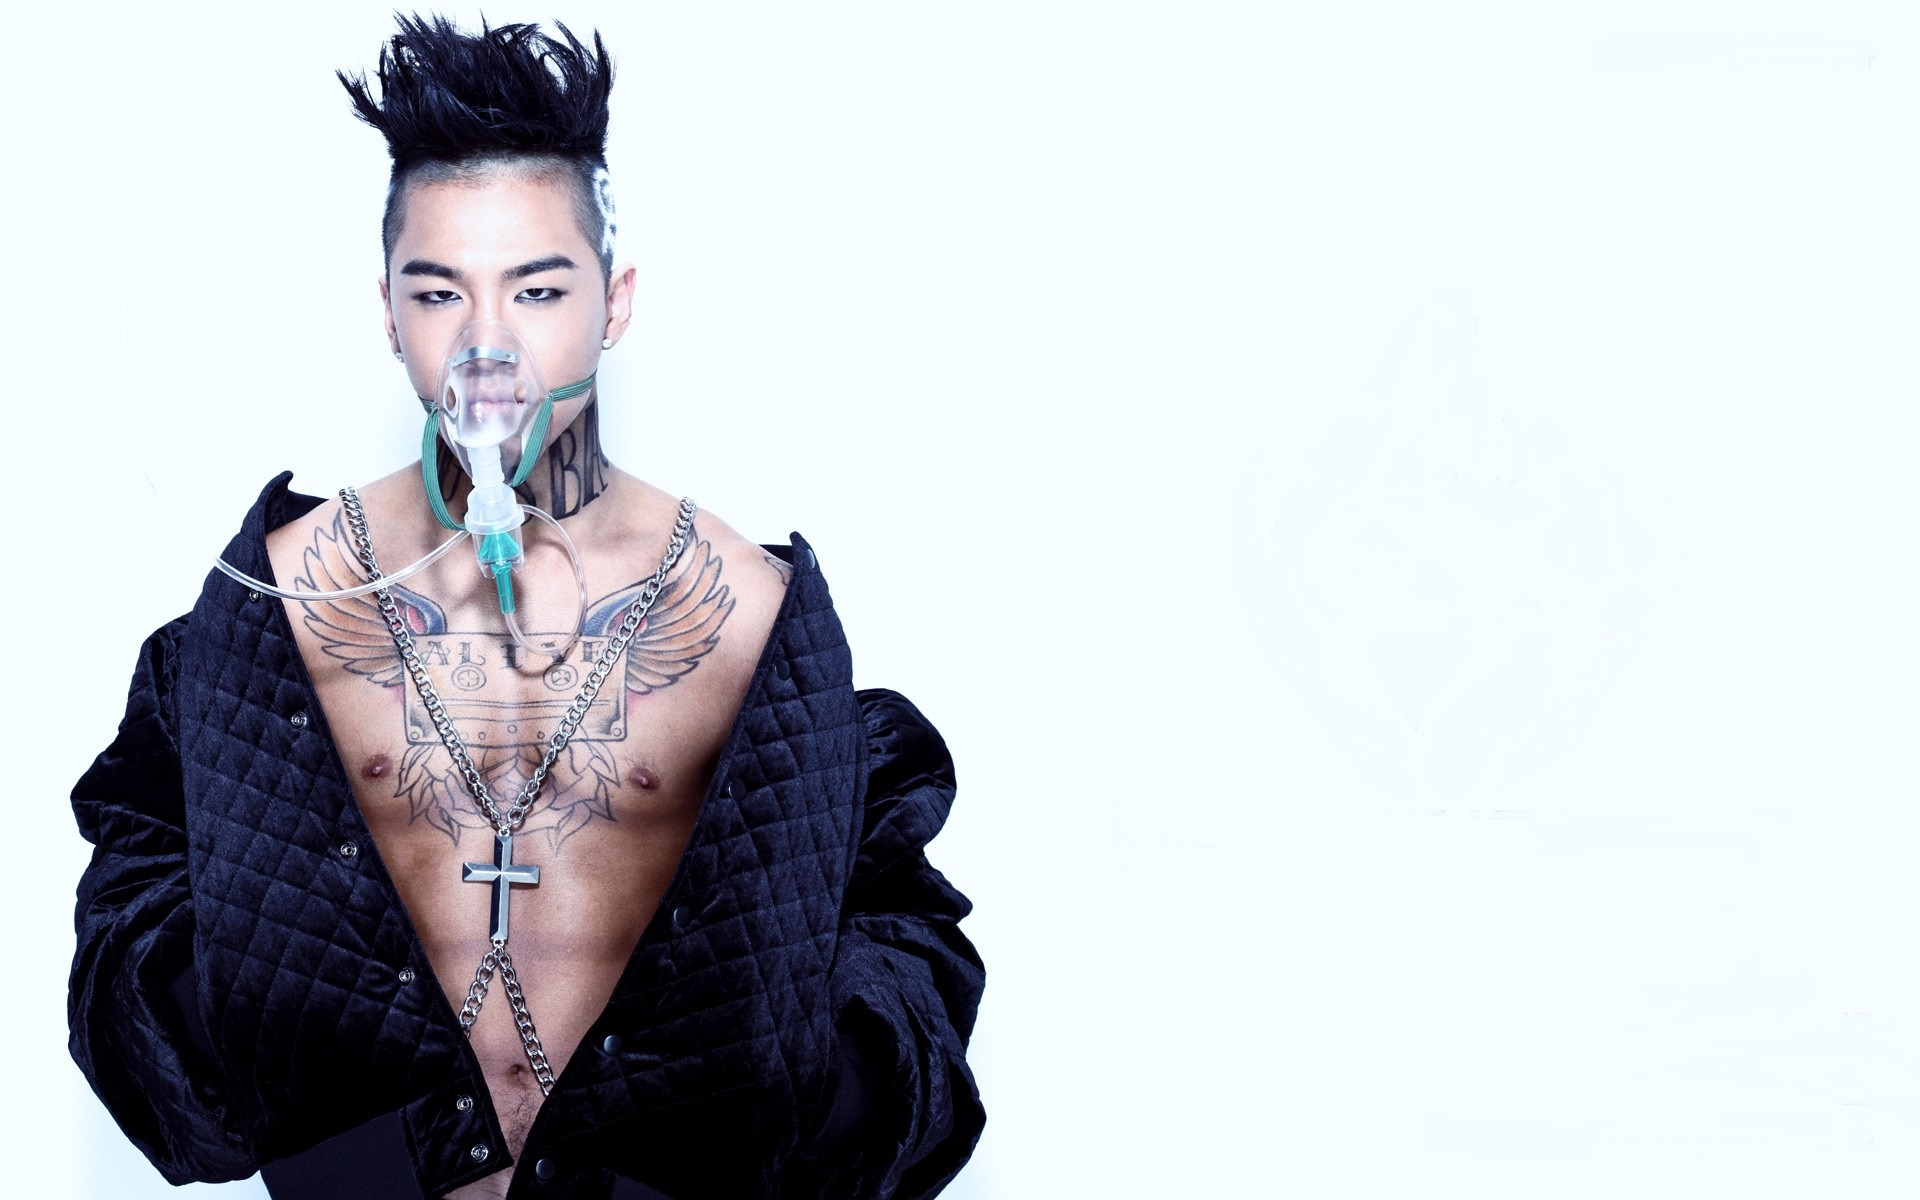 Bts Wallpaper Iphone Taeyang Full Hd 壁纸 And 背景 1920x1200 Id 486950